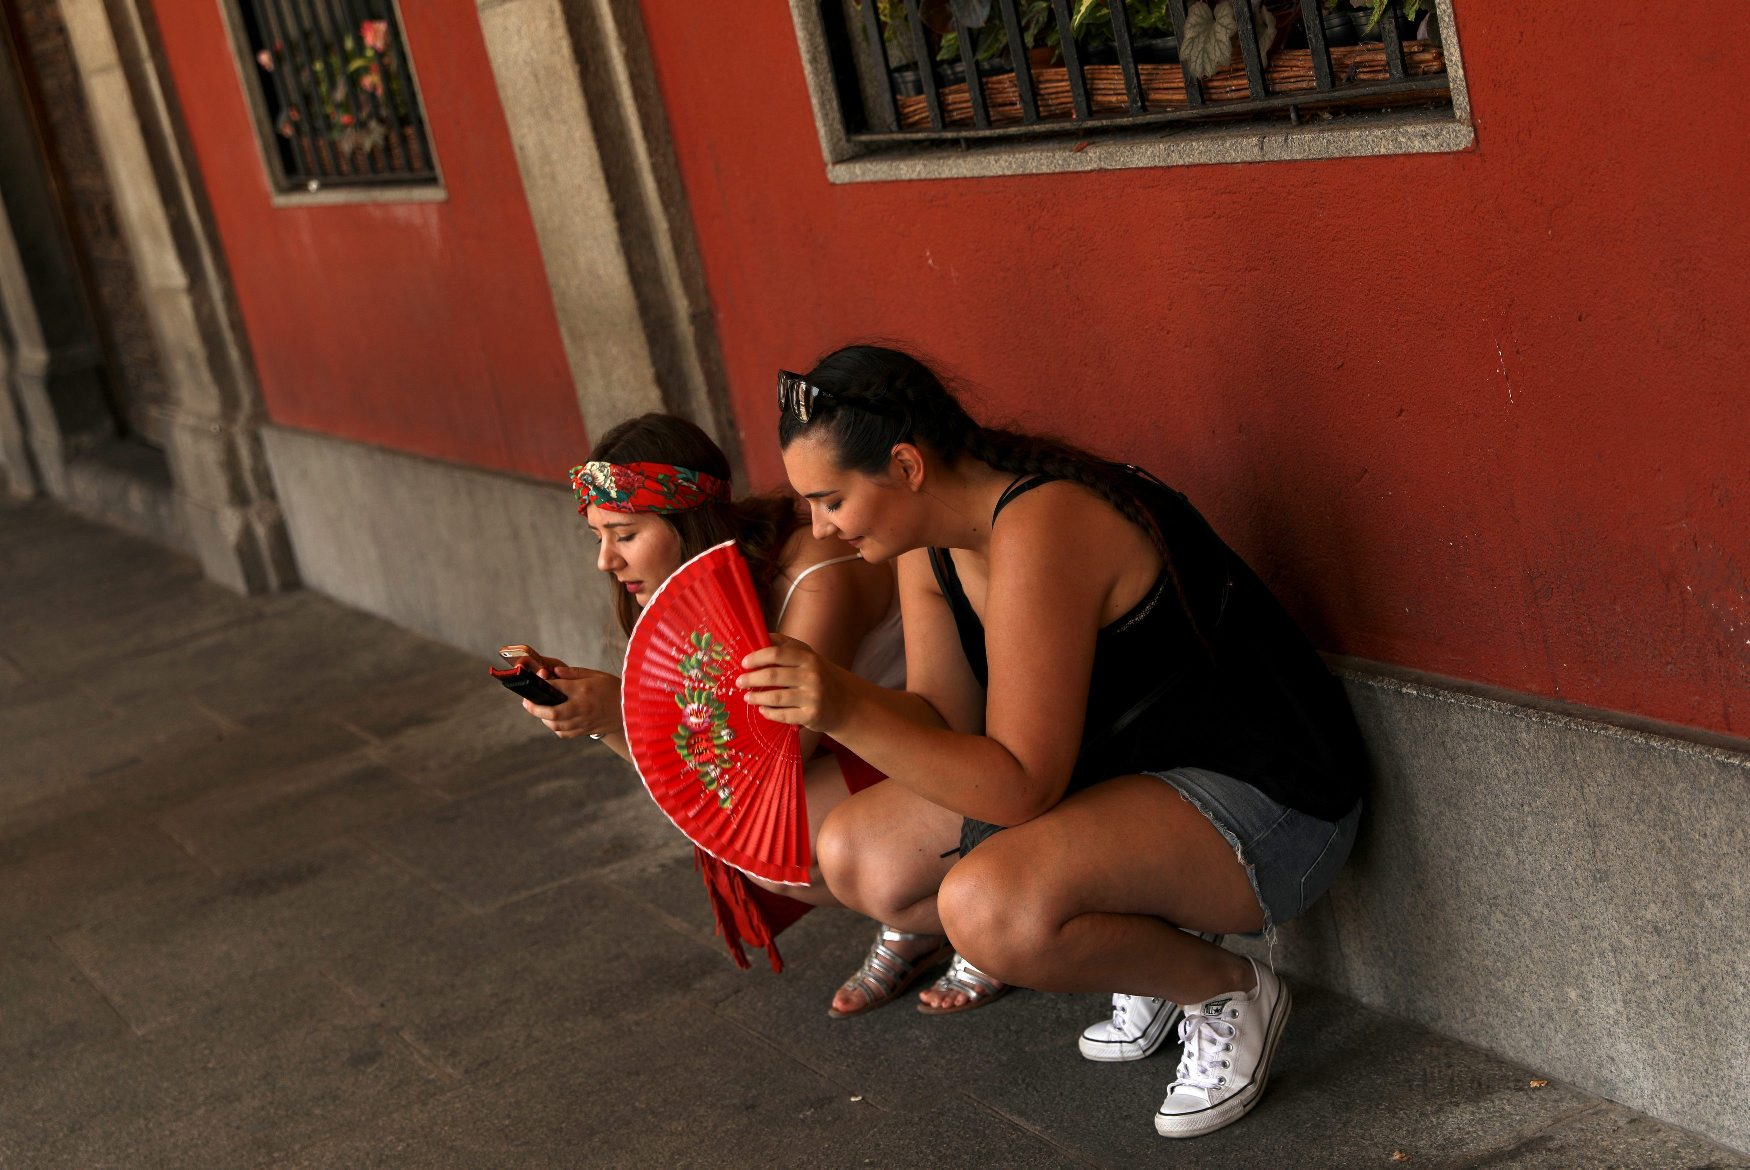 Tourists rest in the shade as temperatures soar throughout the country, in Madrid, Spain, August 2 2018. REUTERS/Susana Vera